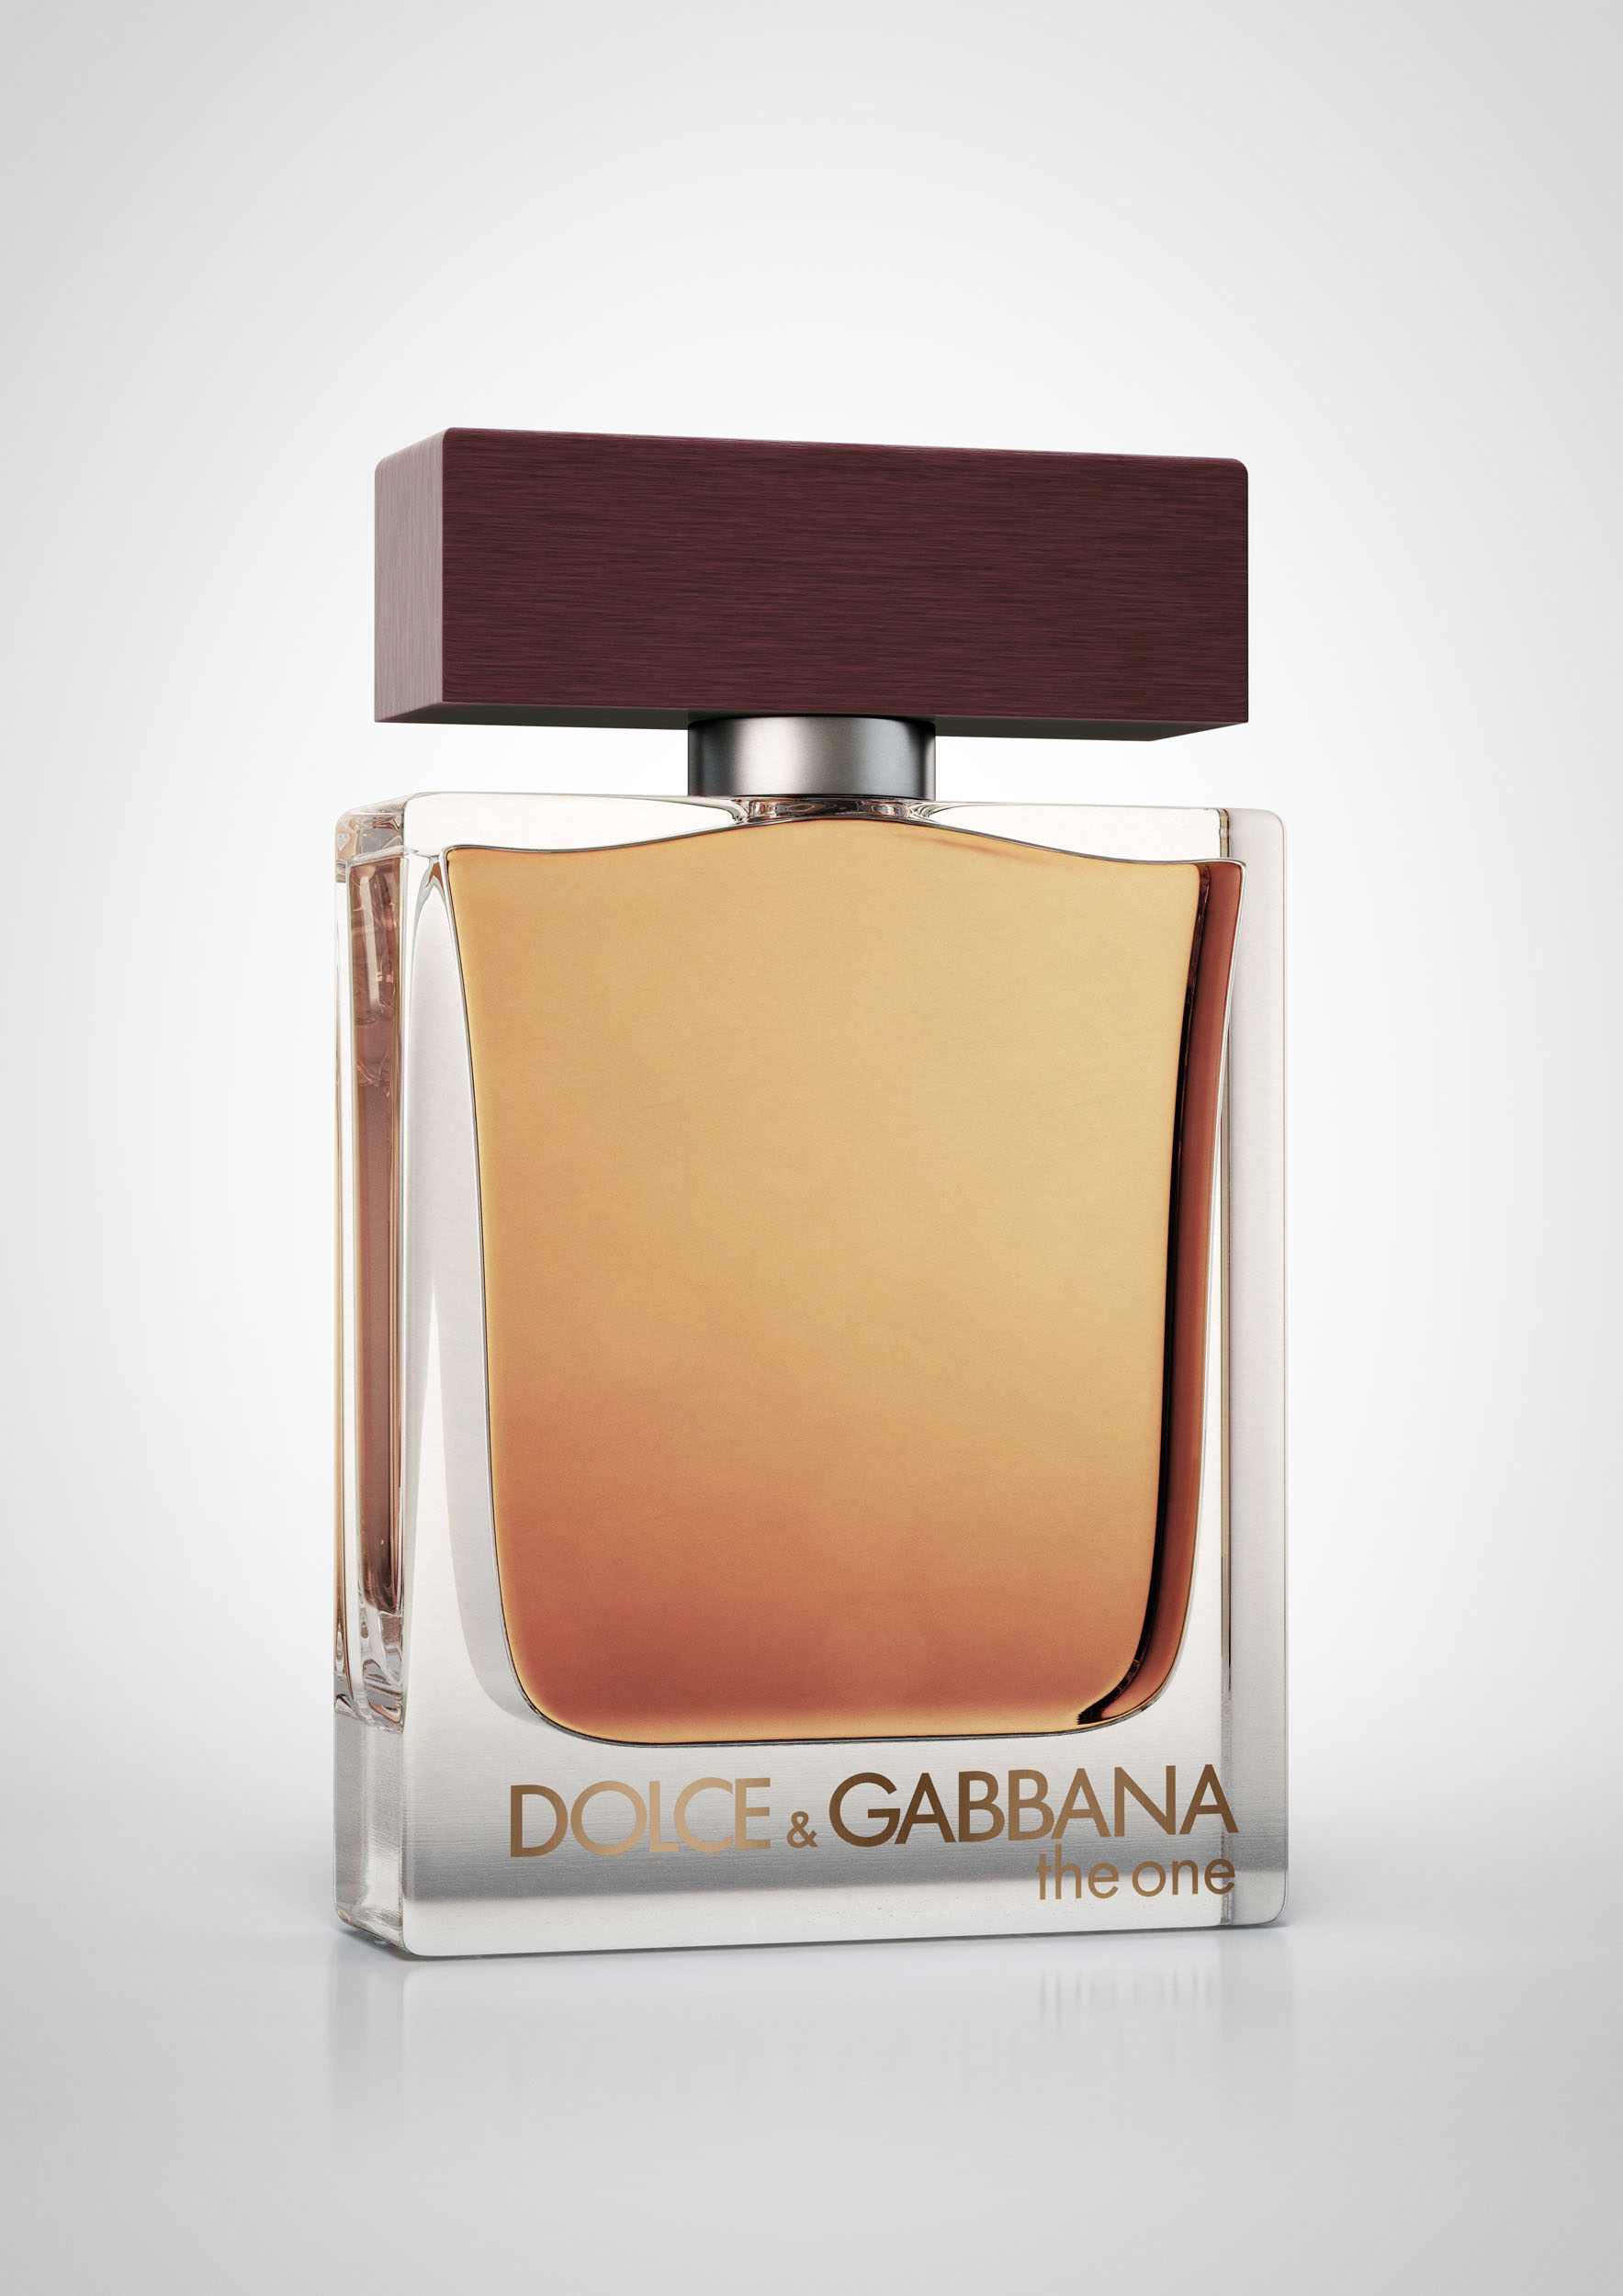 BOOM_CGI_PRODUCT_d&g-the-one-male-perfume.jpg